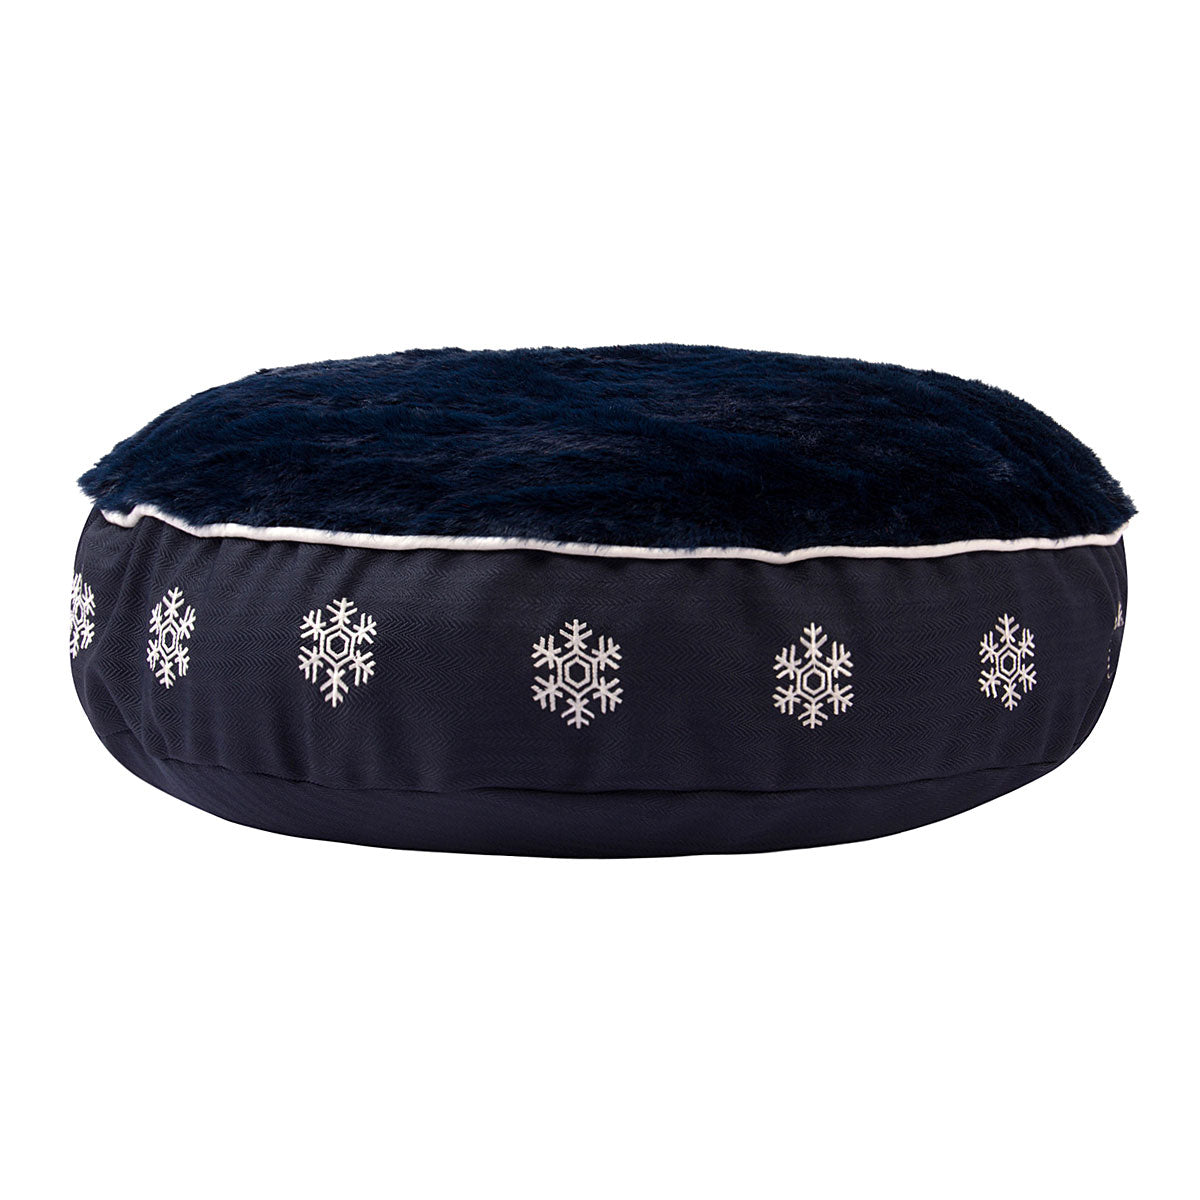 Halo Snowflake Round Dog Bed_2792